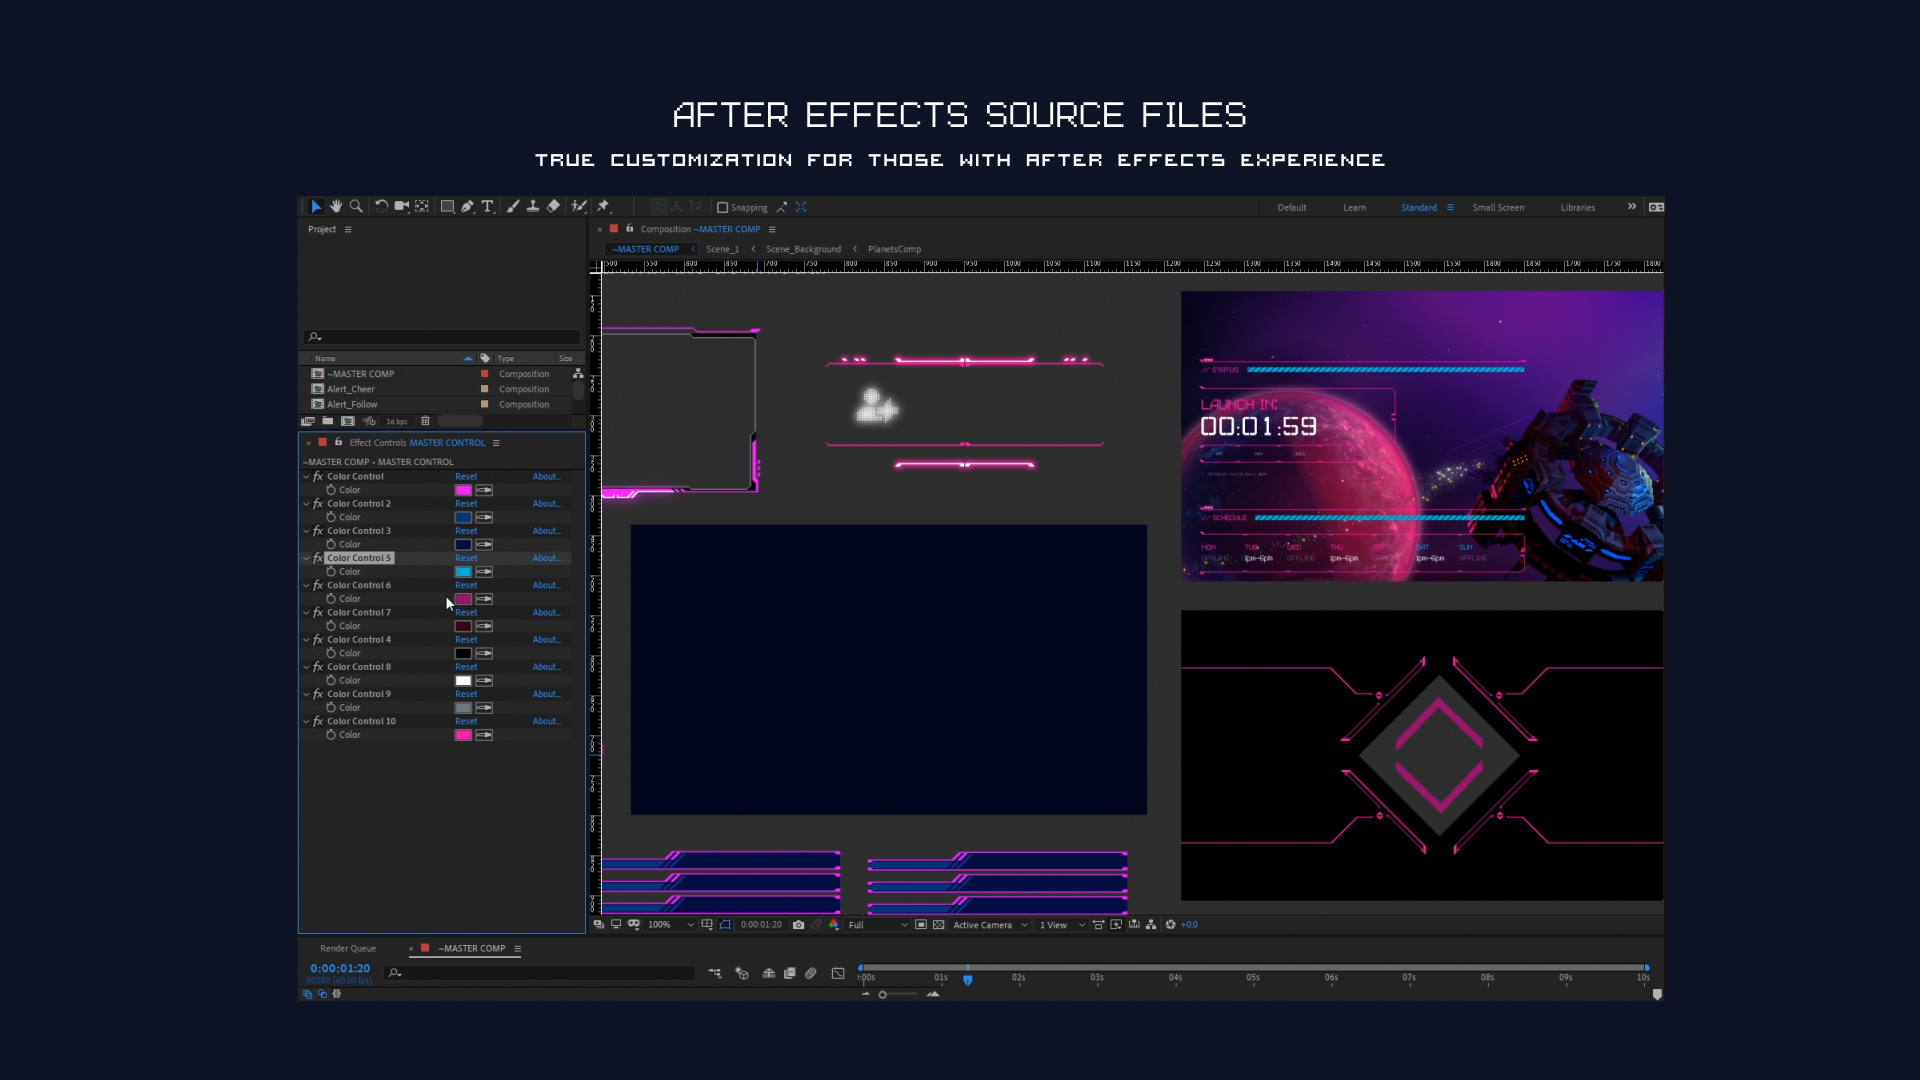 Nova Pixel Art After Effects File